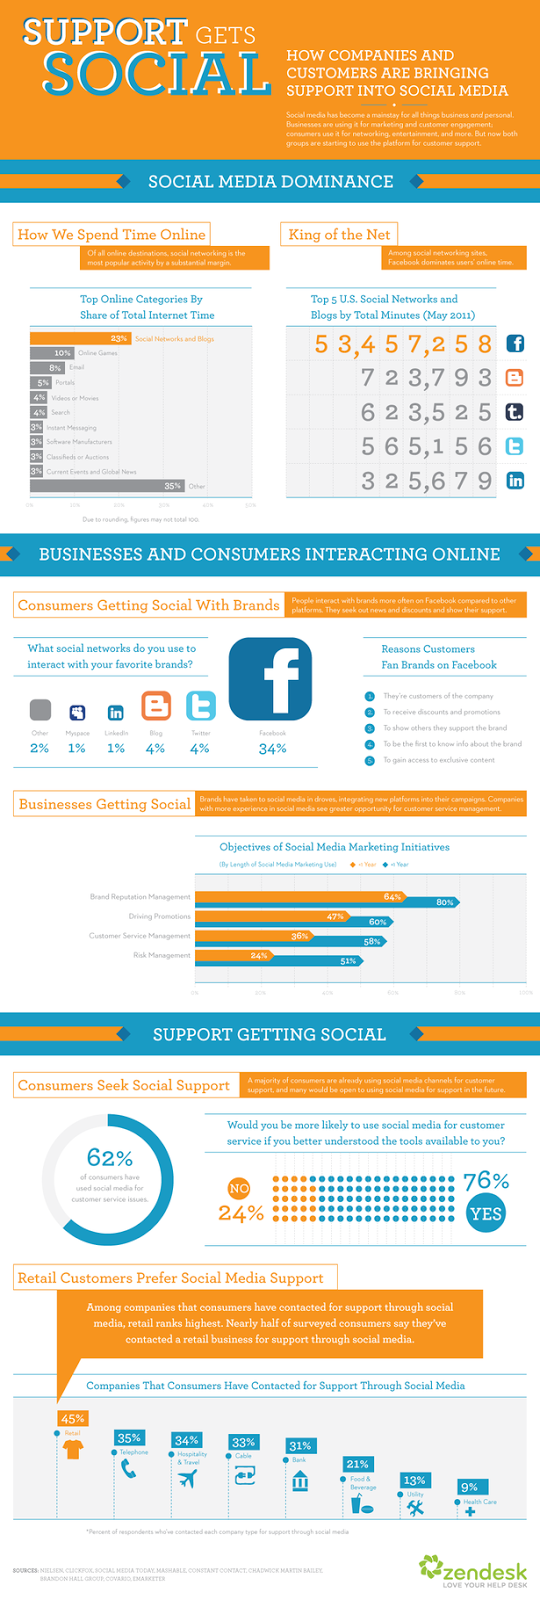 http://lgdcom.com/wp-content/uploads/2012/02/support-gets-social-media-infographic.png